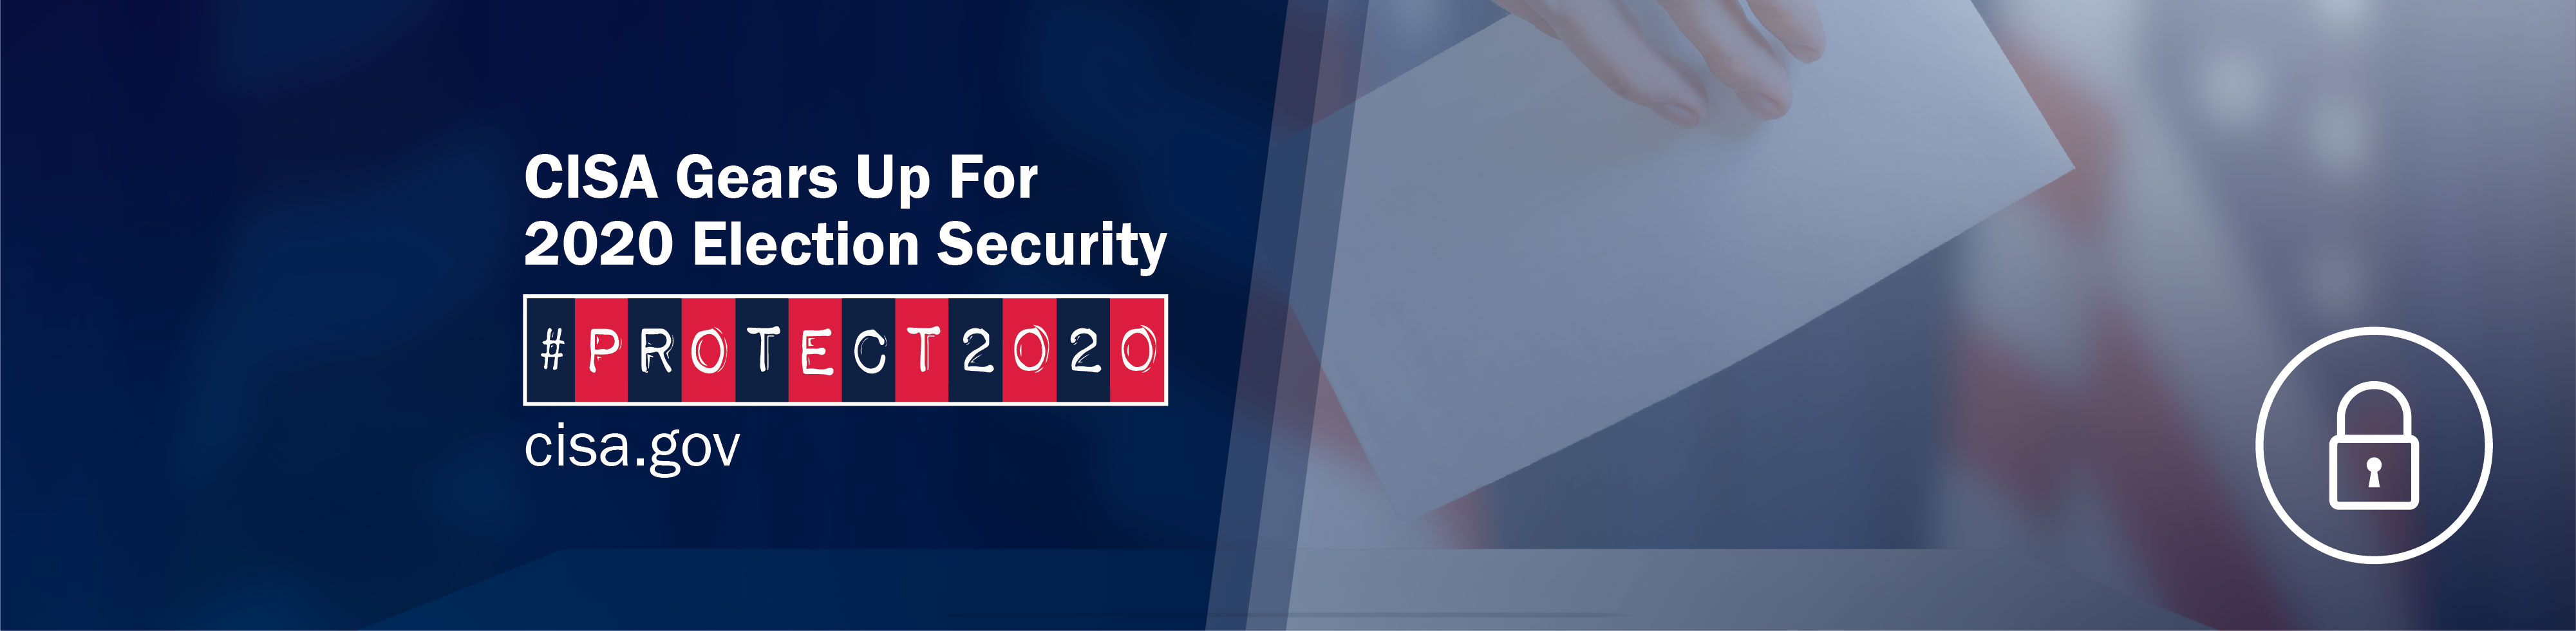 CISA Gears Up for 2020 Election Security. #Protect2020. cisa.gov. image of a lock.